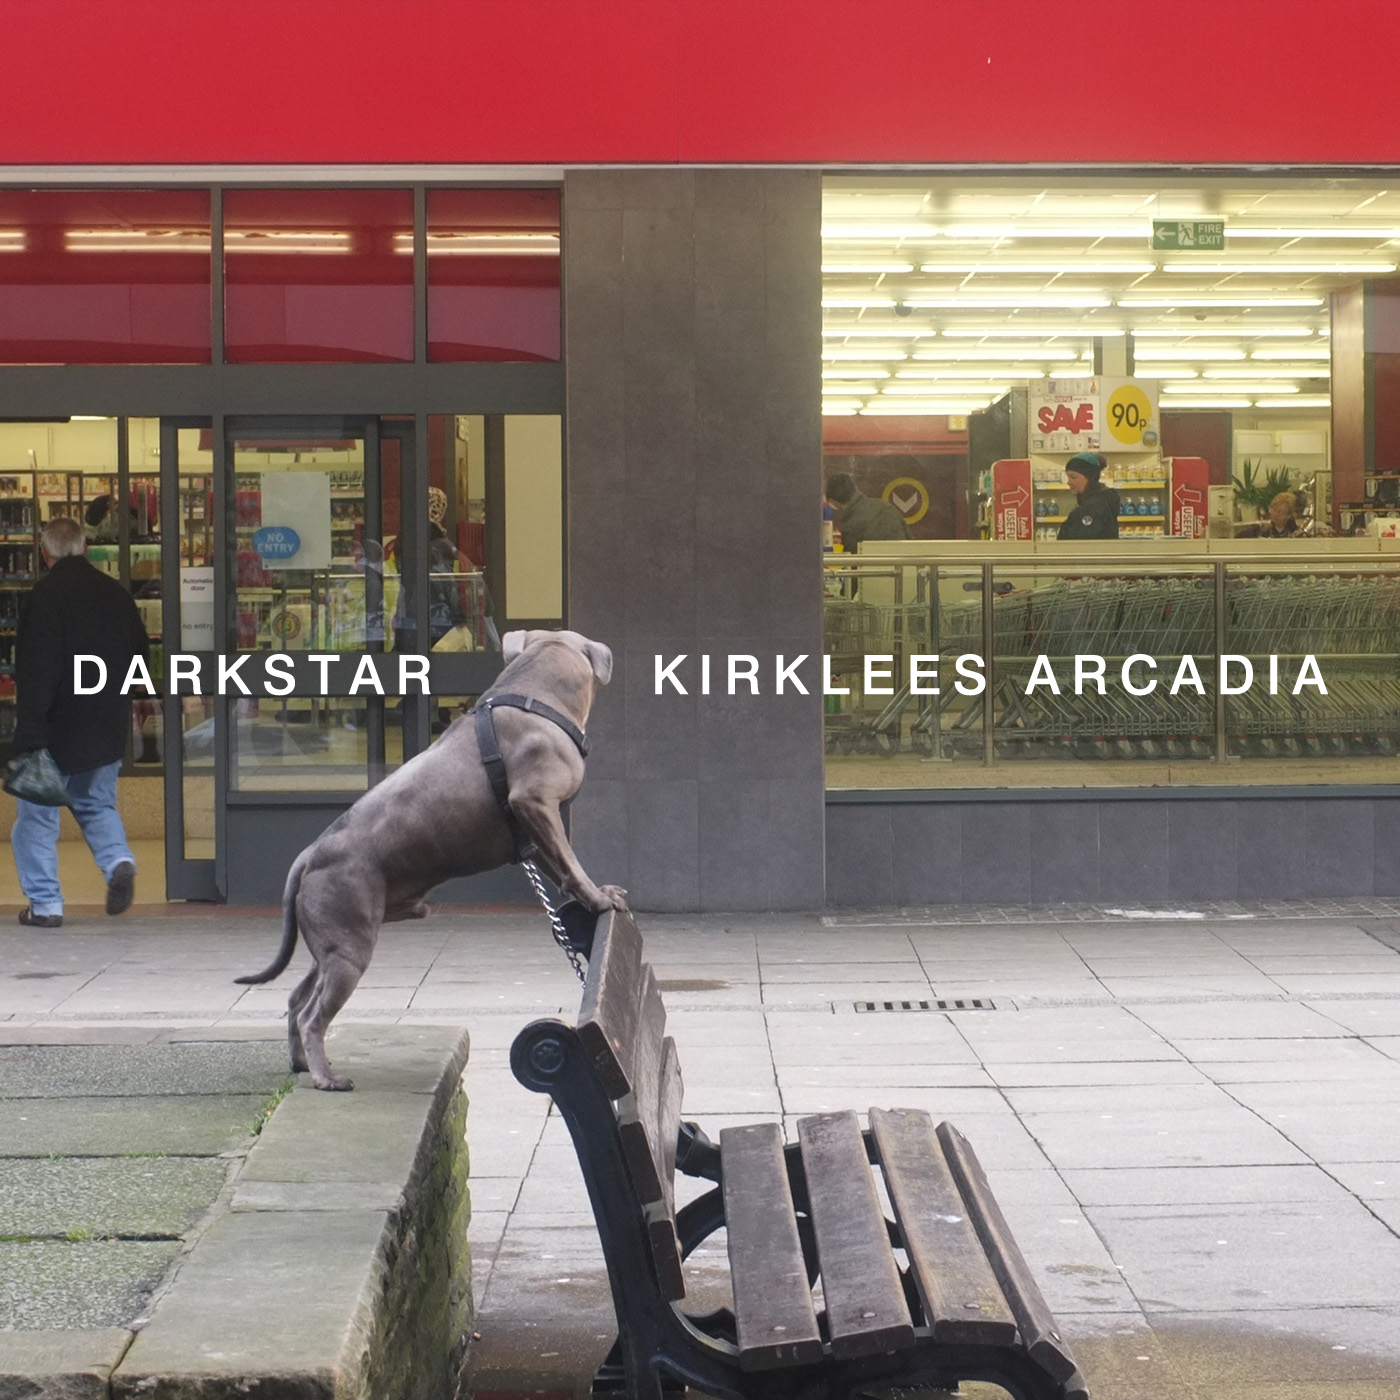 Download the duo's new mixtape 'Kirklees Arcadia'